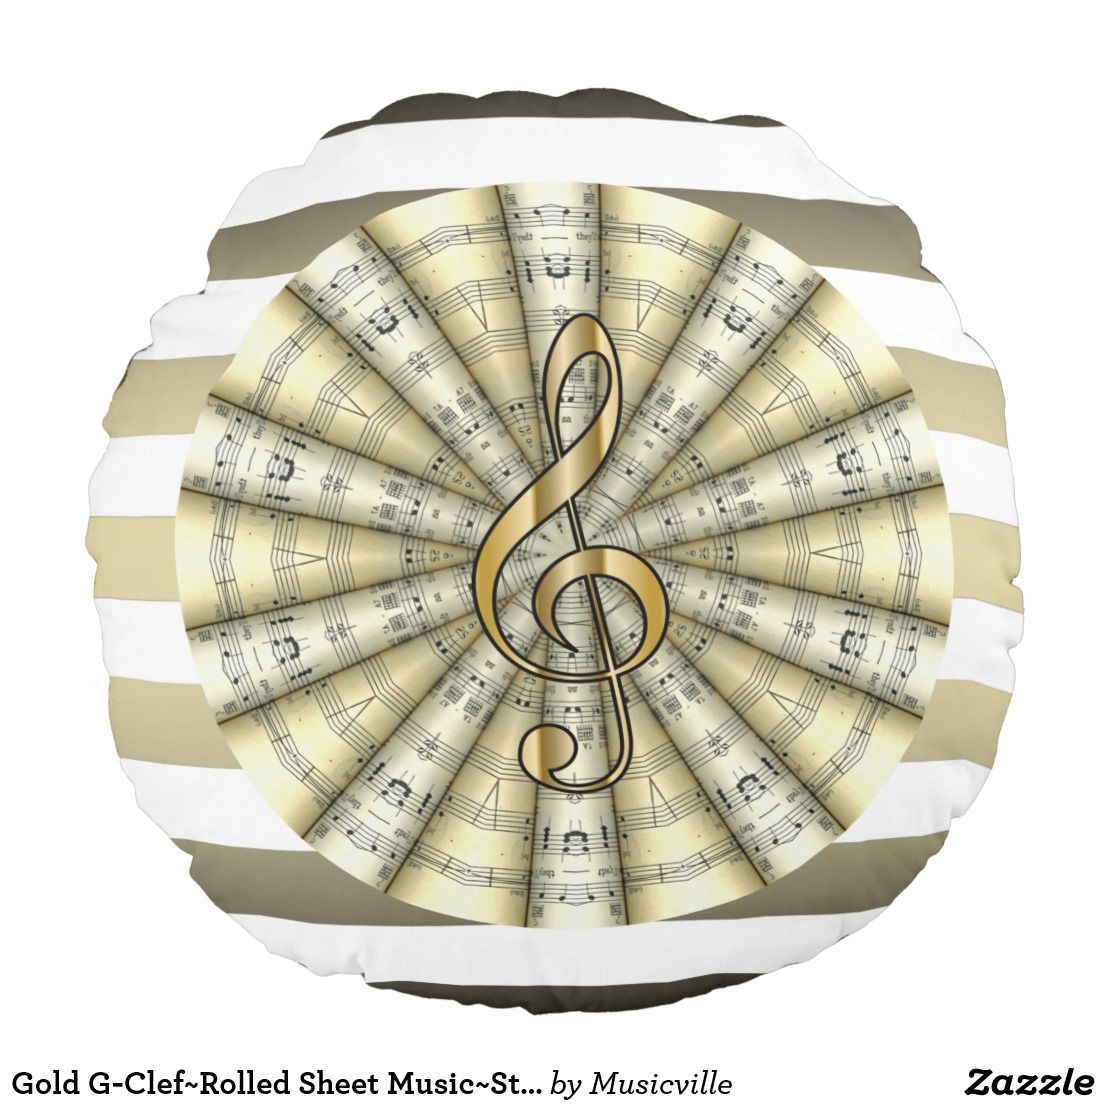 24e7c81aace27bd51af5dddc3fcce37a gold g clef~rolled sheet music~striped background~ round pillow in